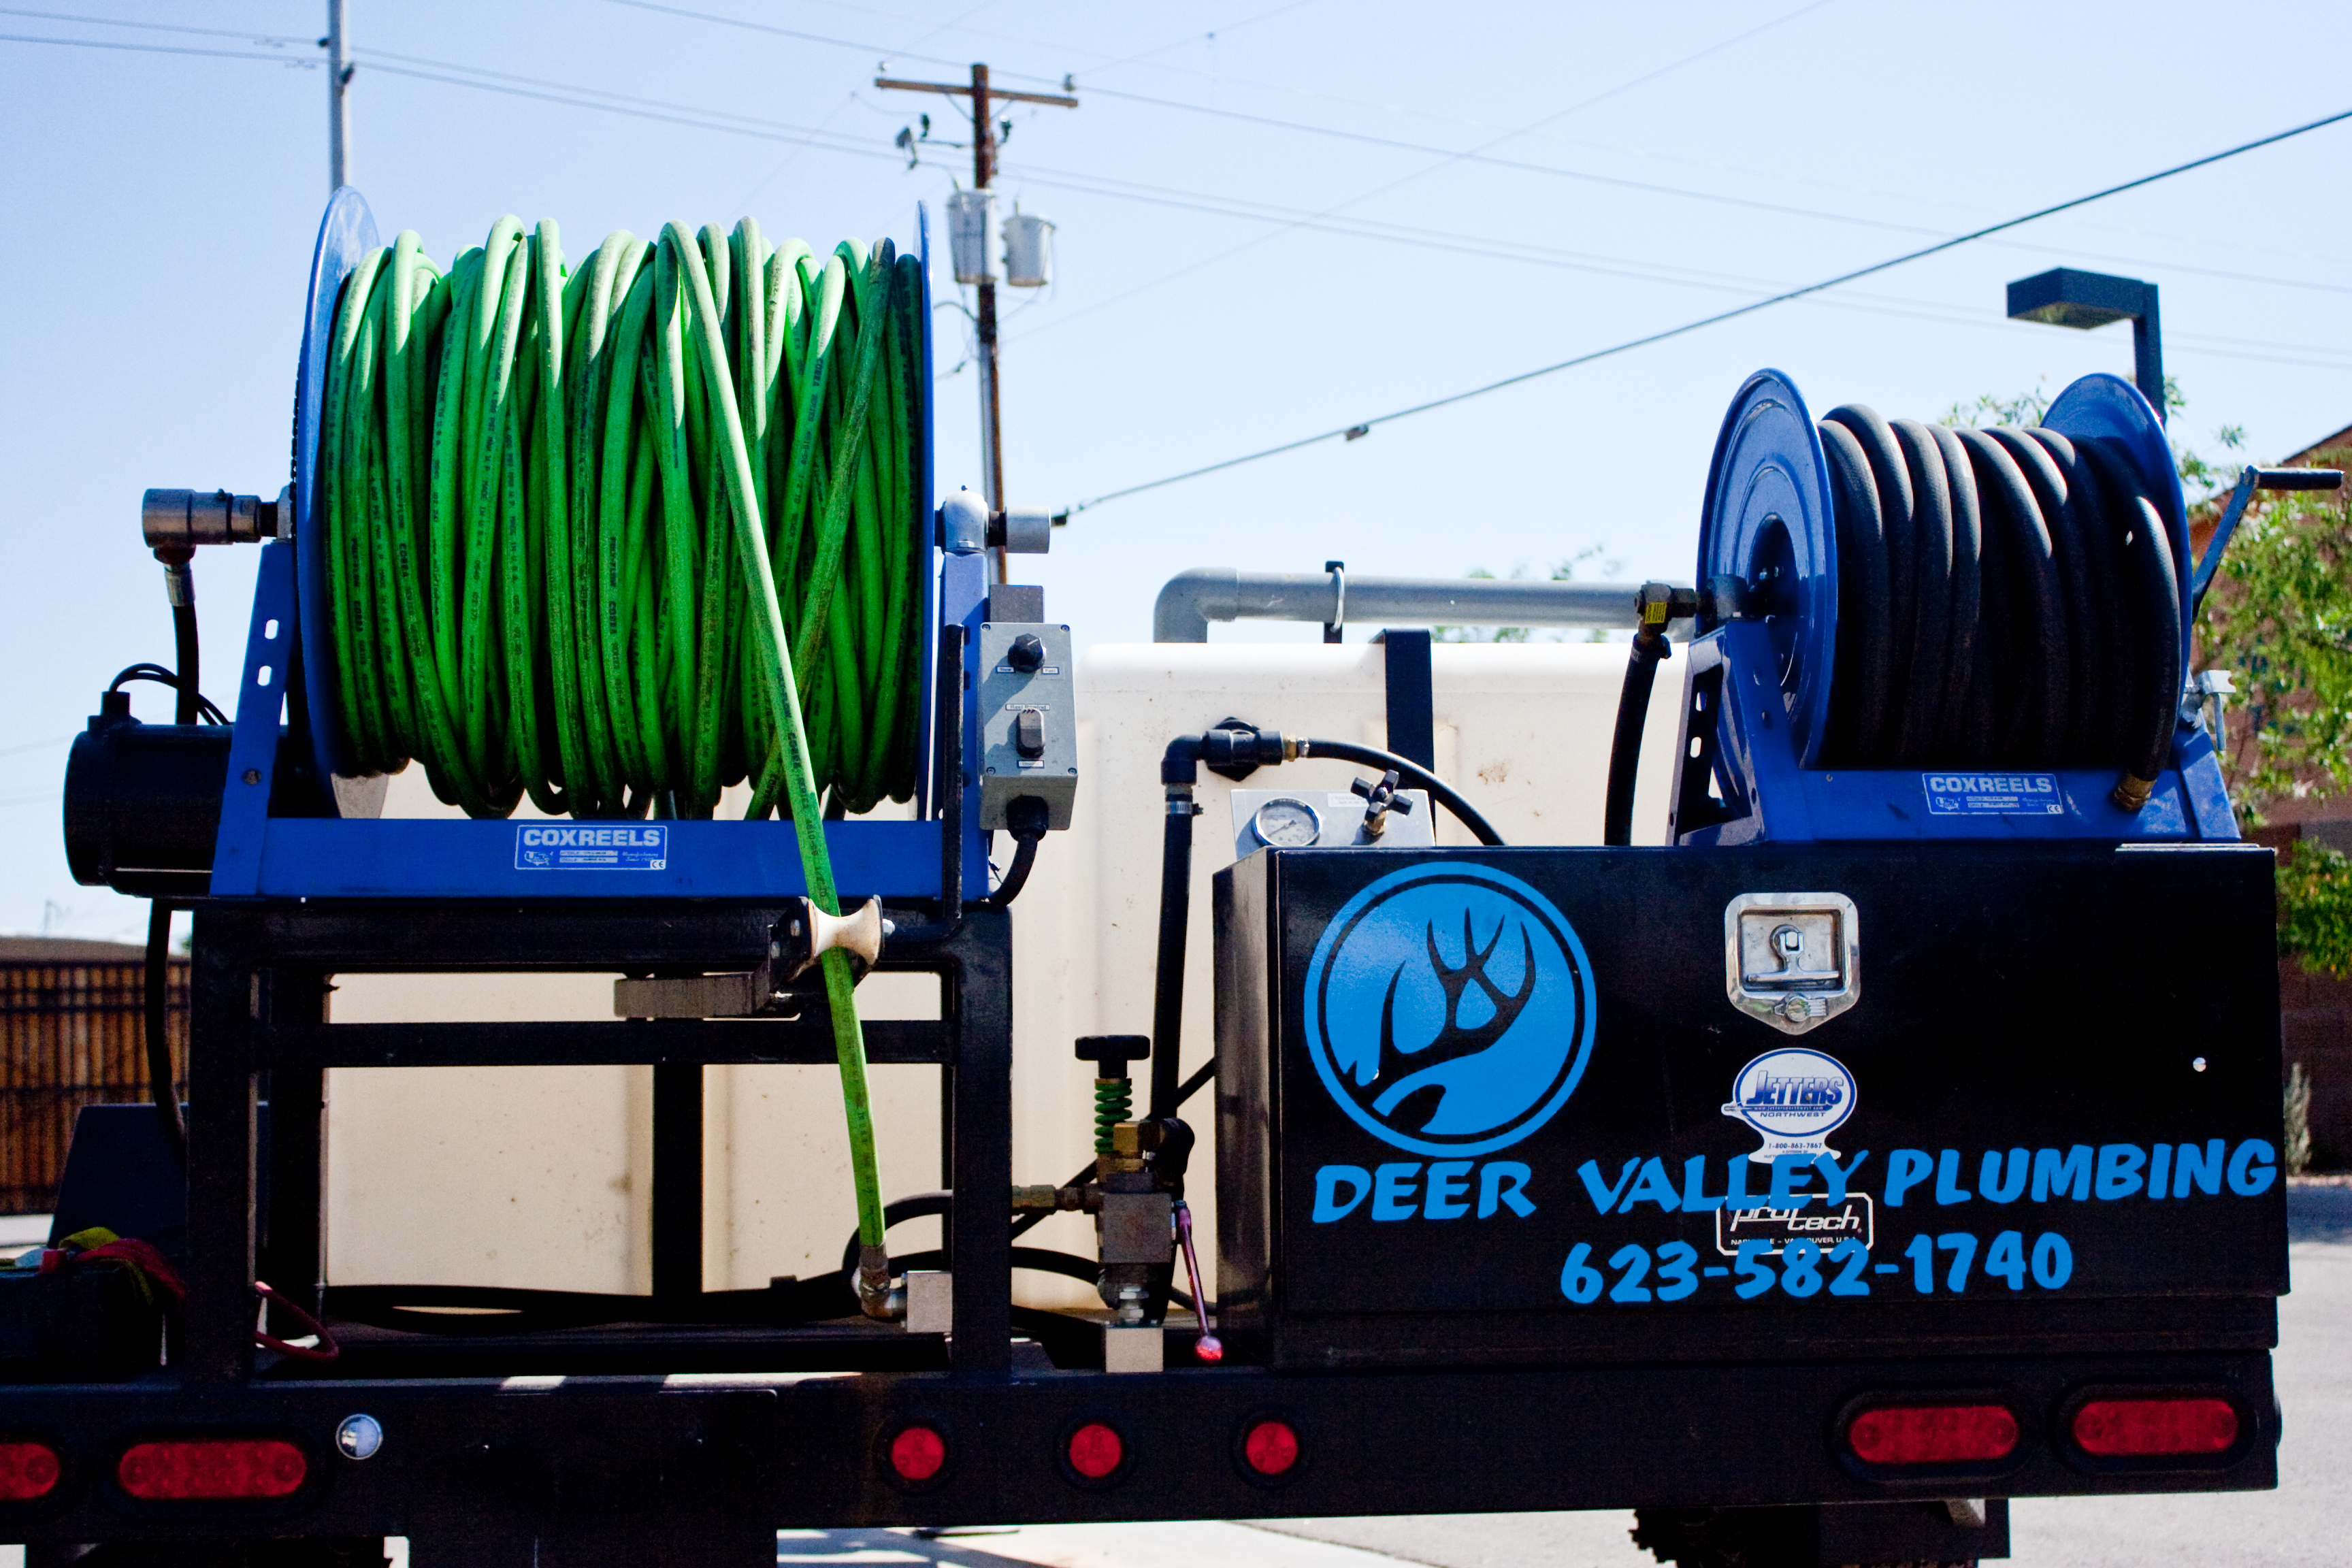 Deer Valley Plumbing Contractors Inc